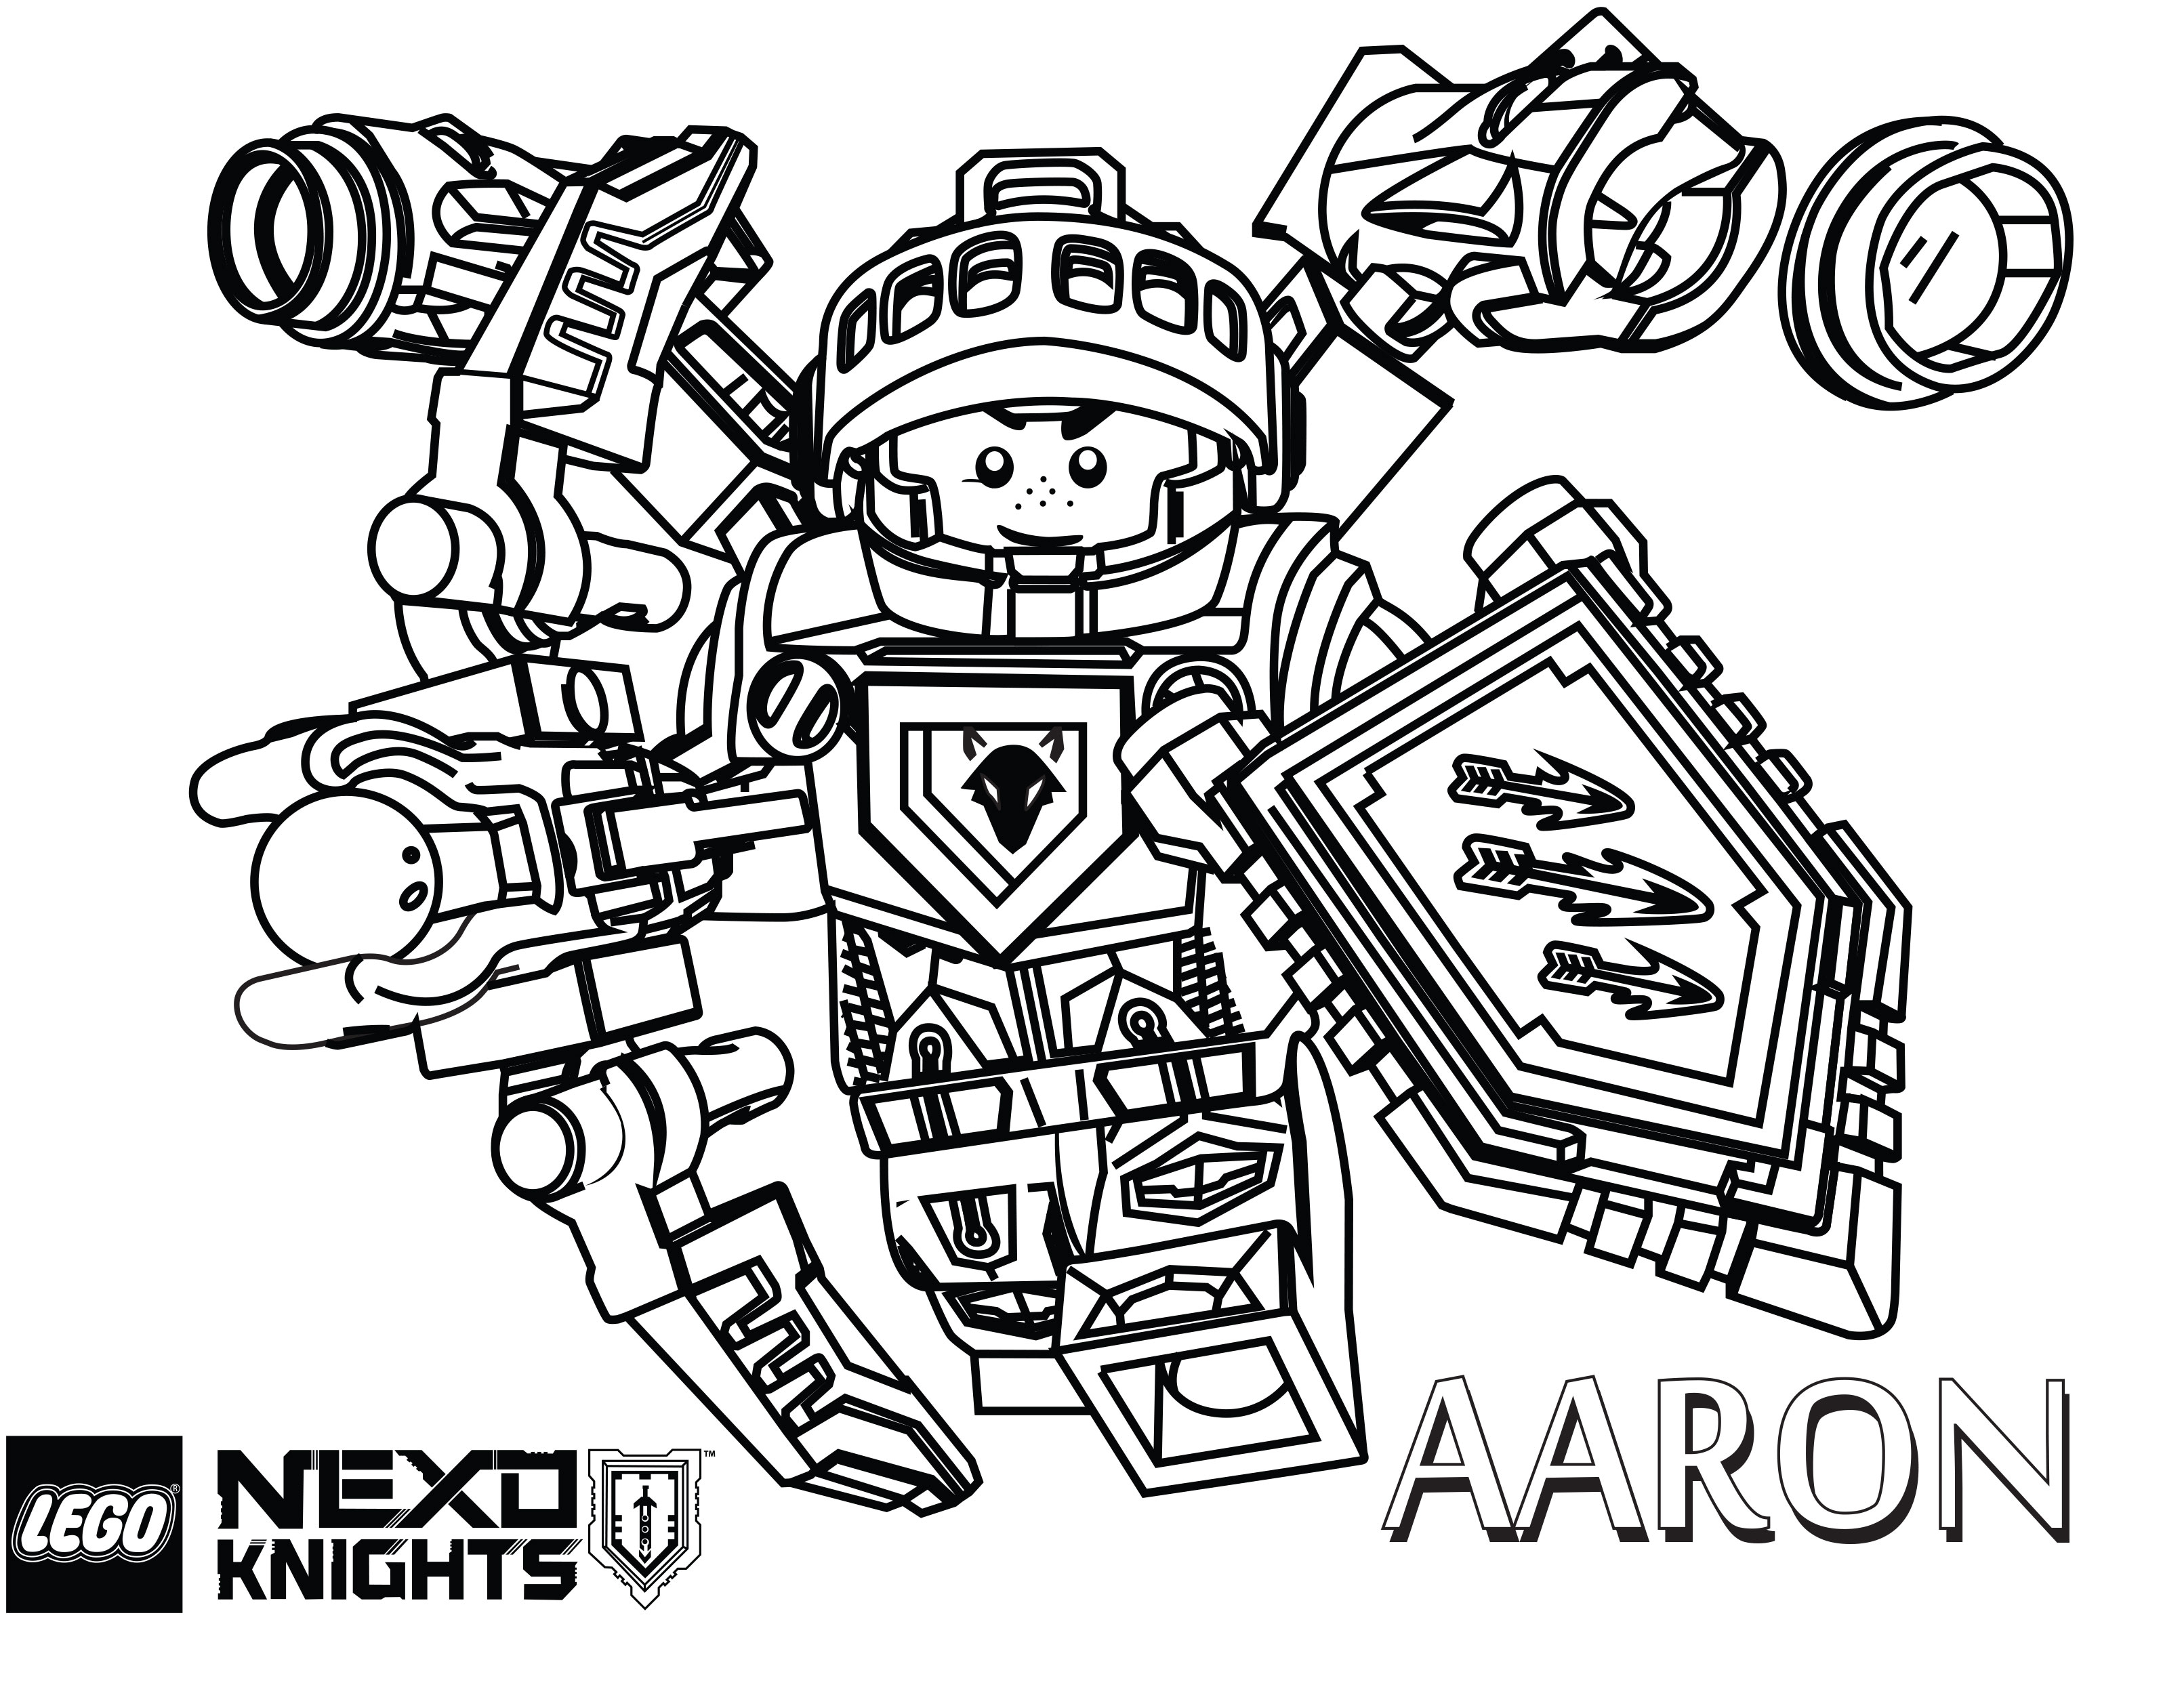 25+ Creative Image of Nexo Knights Coloring Pages